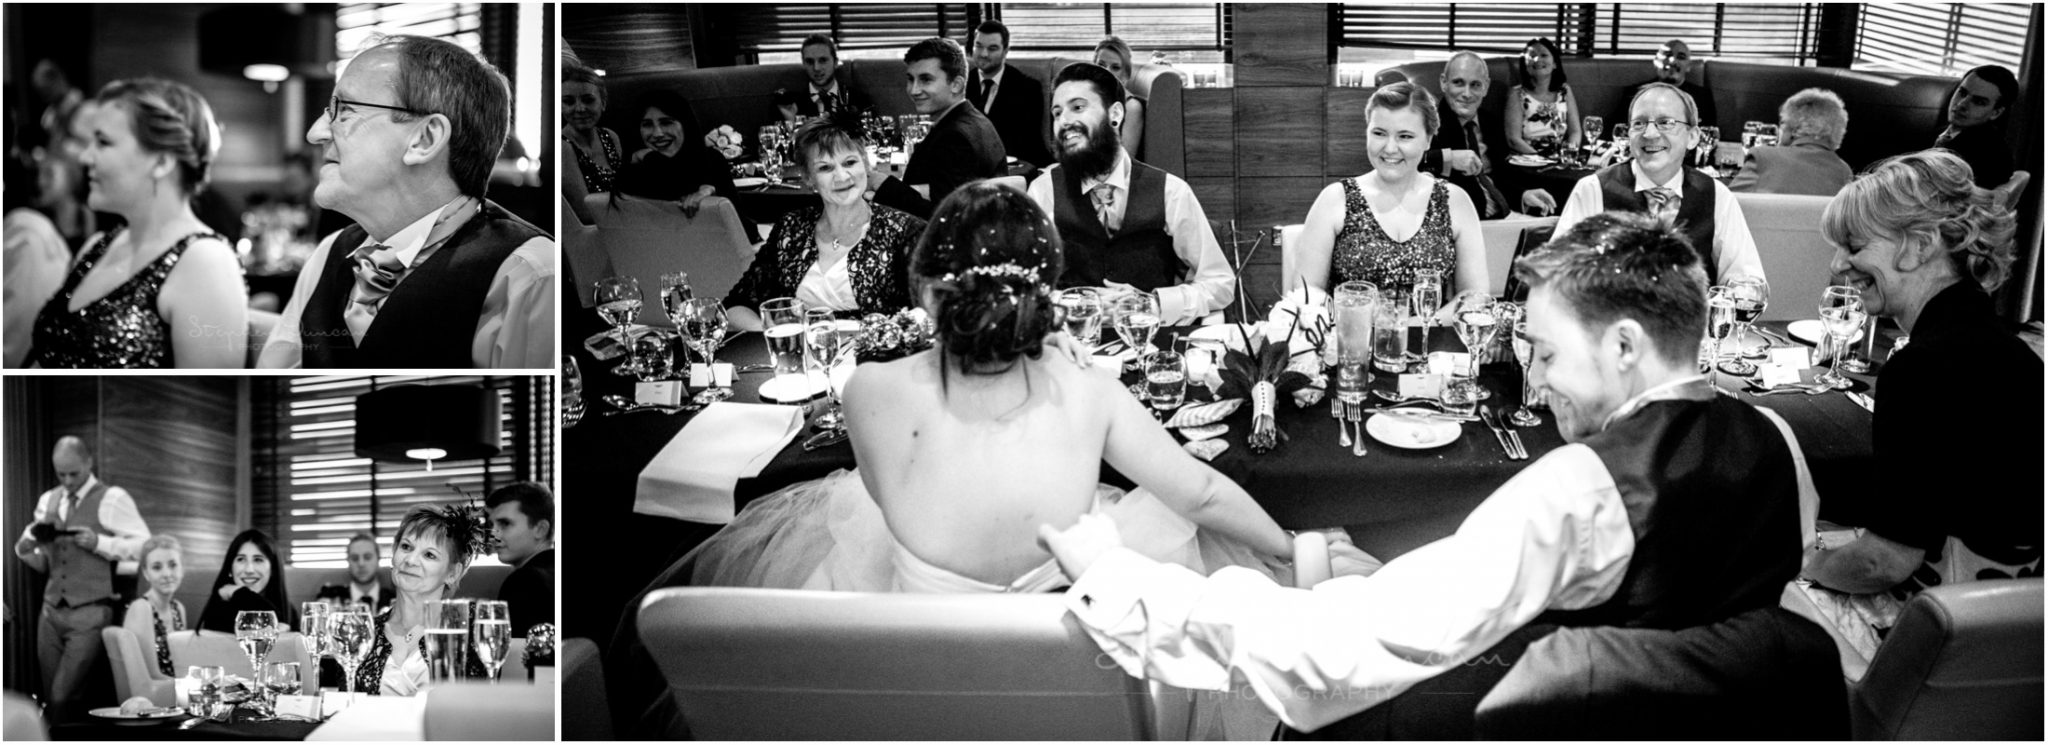 The Aviator wedding photography guest reactions during speeches